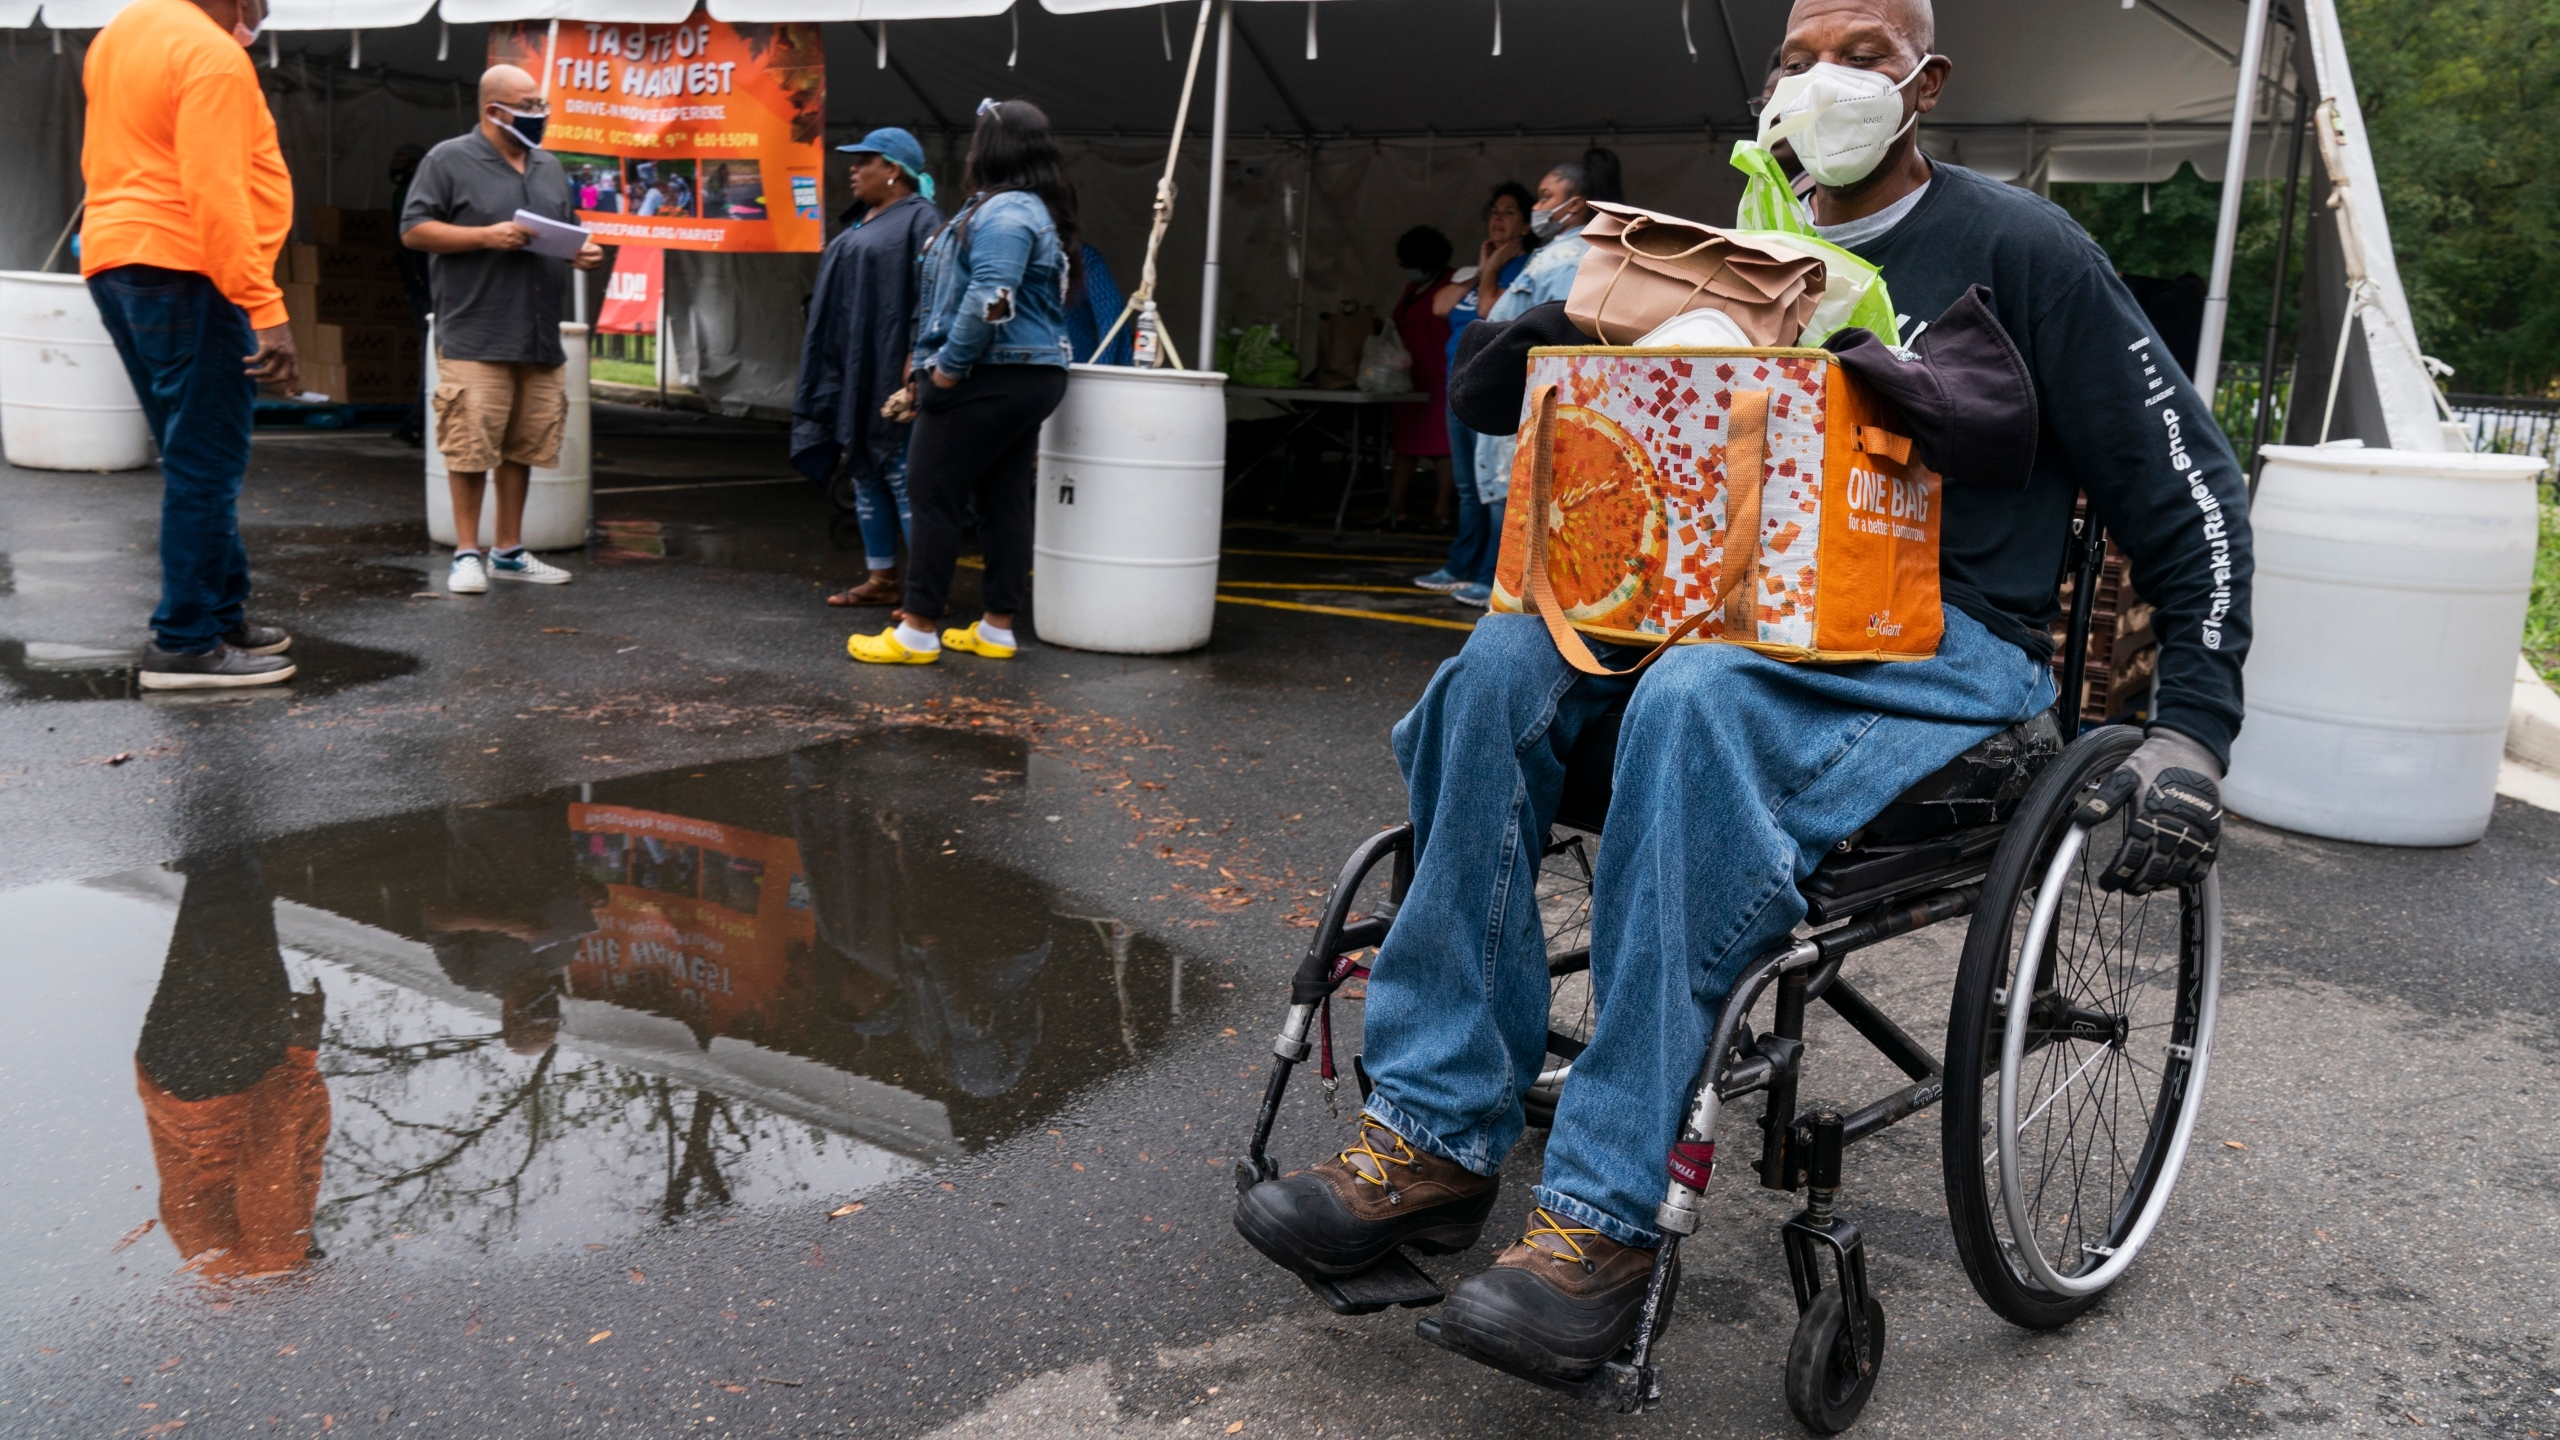 Randy Horton, of Washington, holds bags of food in his lap as he leaves in his wheelchair after receiving a bag of produce and a lunch meal at the Town Hall Education Arts & Recreation Campus (THEARC), Wednesday, Oct. 6, 2021, in Washington. (AP Photo/Jacquelyn Martin)